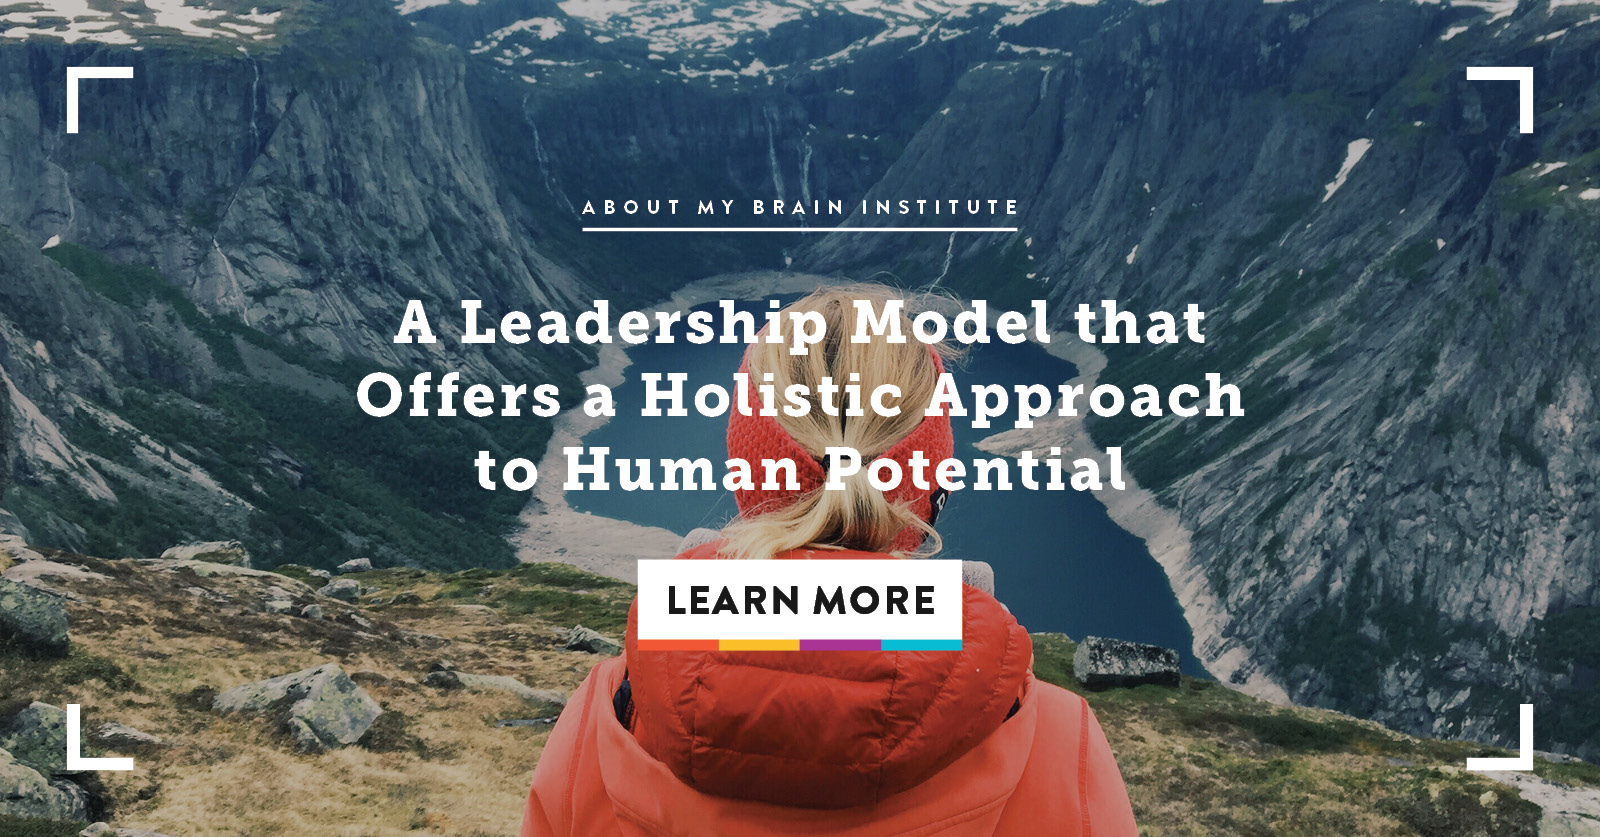 A Leadership Model that Offers a Holistic Approach to Human Potential